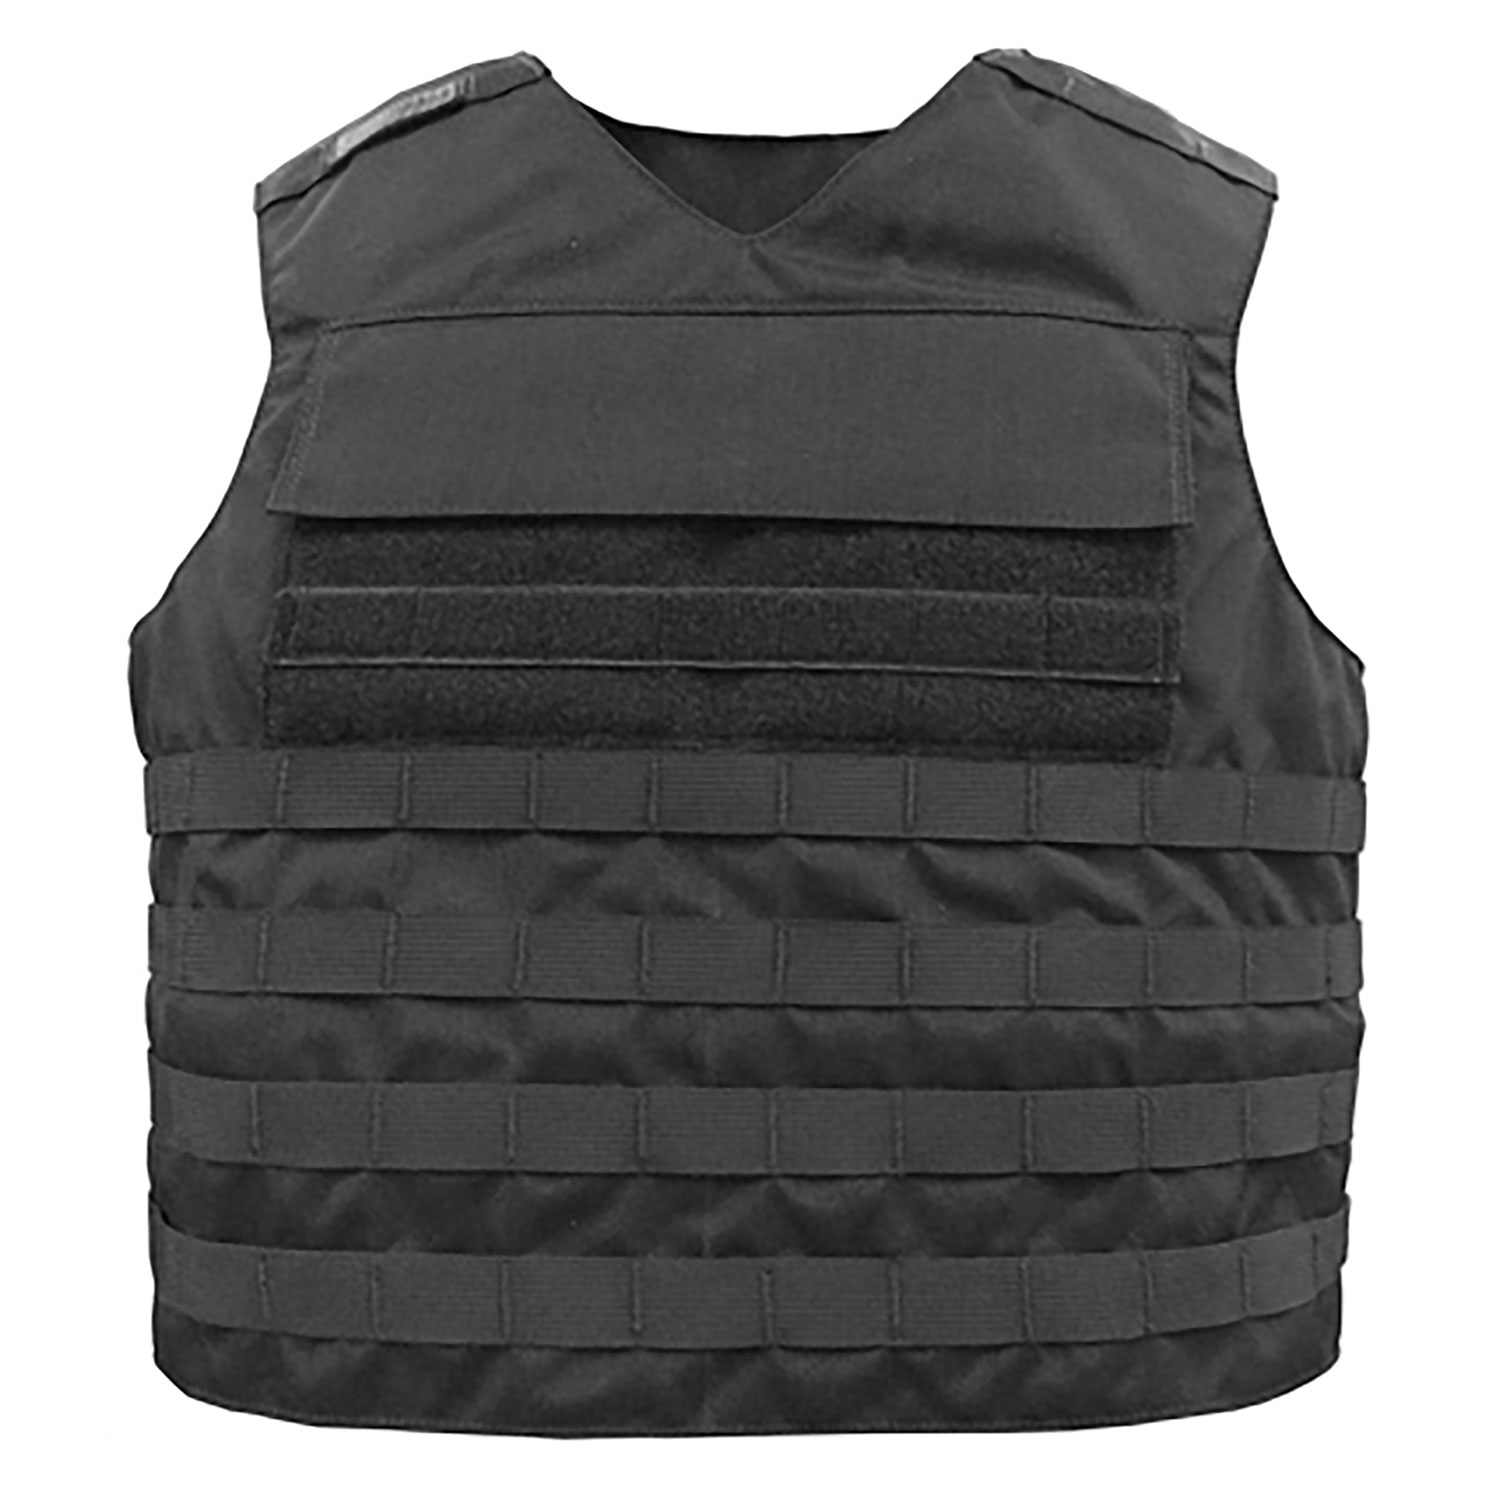 Point Blank R20-D Tactical Carrier with MOLLE